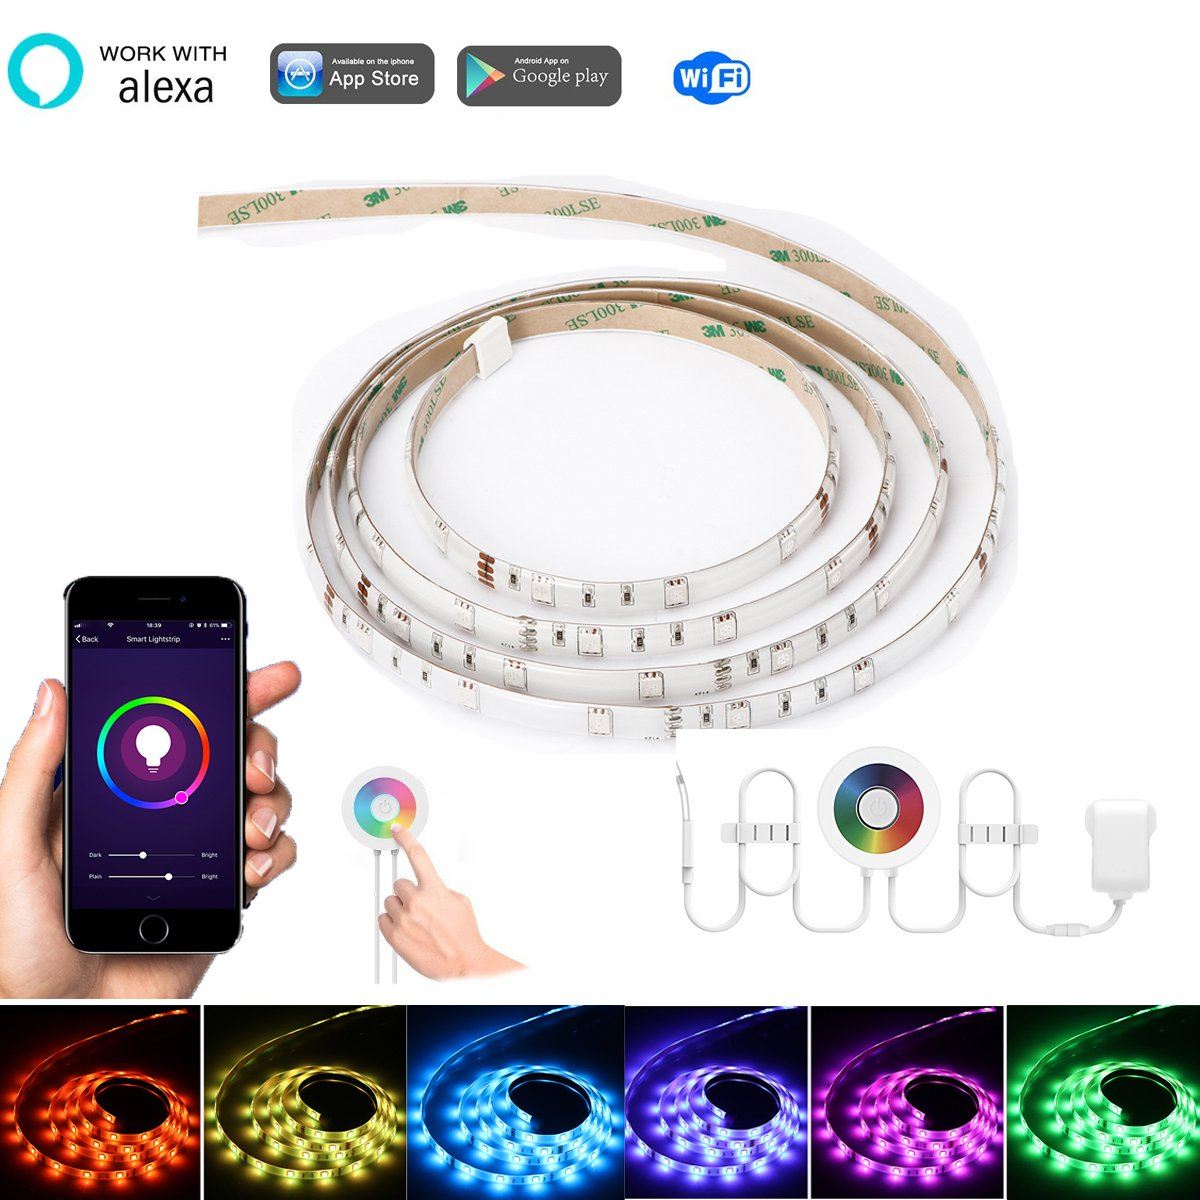 2m / 6.6ft RGB 120-LED WiFi Streifen Licht, Konesky Arbeit mit Alexa / Google Smart Flexible Seil Band Licht Touch / APP / Voice / Music Control Timer-Funktion fü r Android IOS